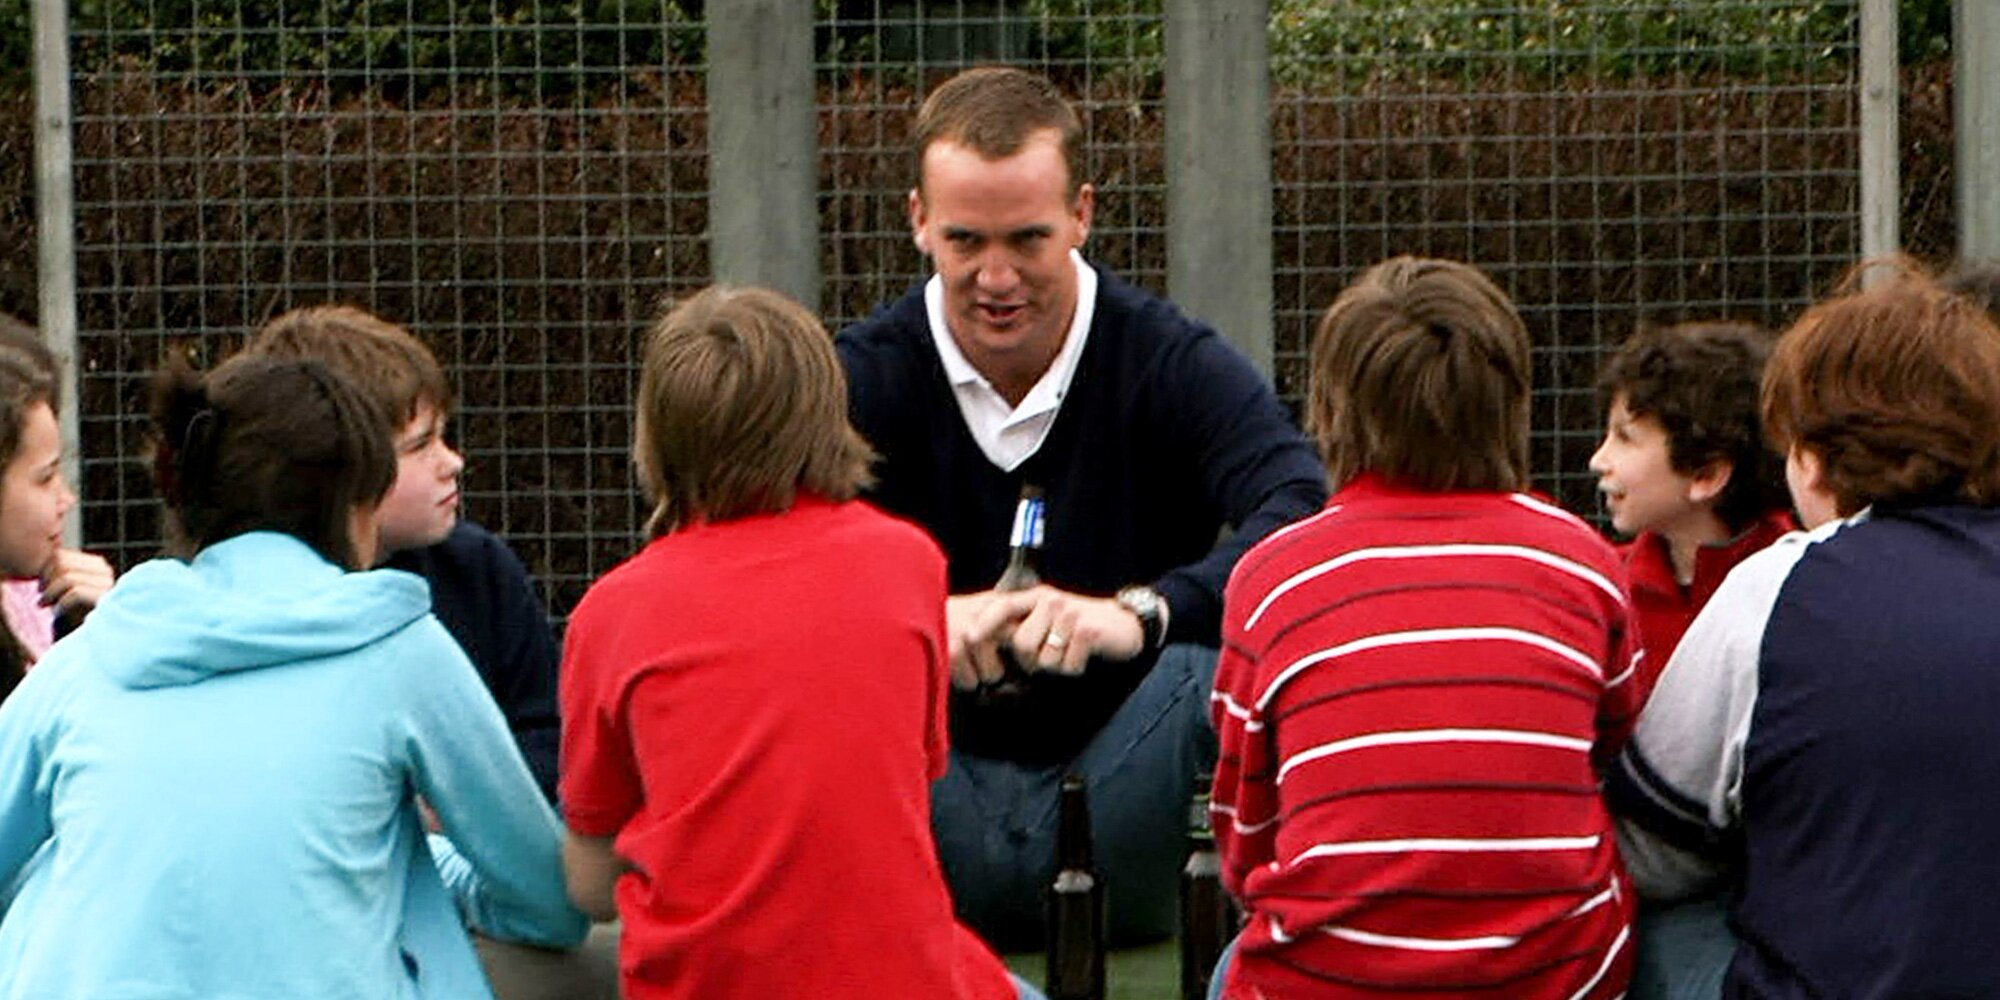 Peyton Manning blames 'SNL' for other parents not wanting him to coach their kids